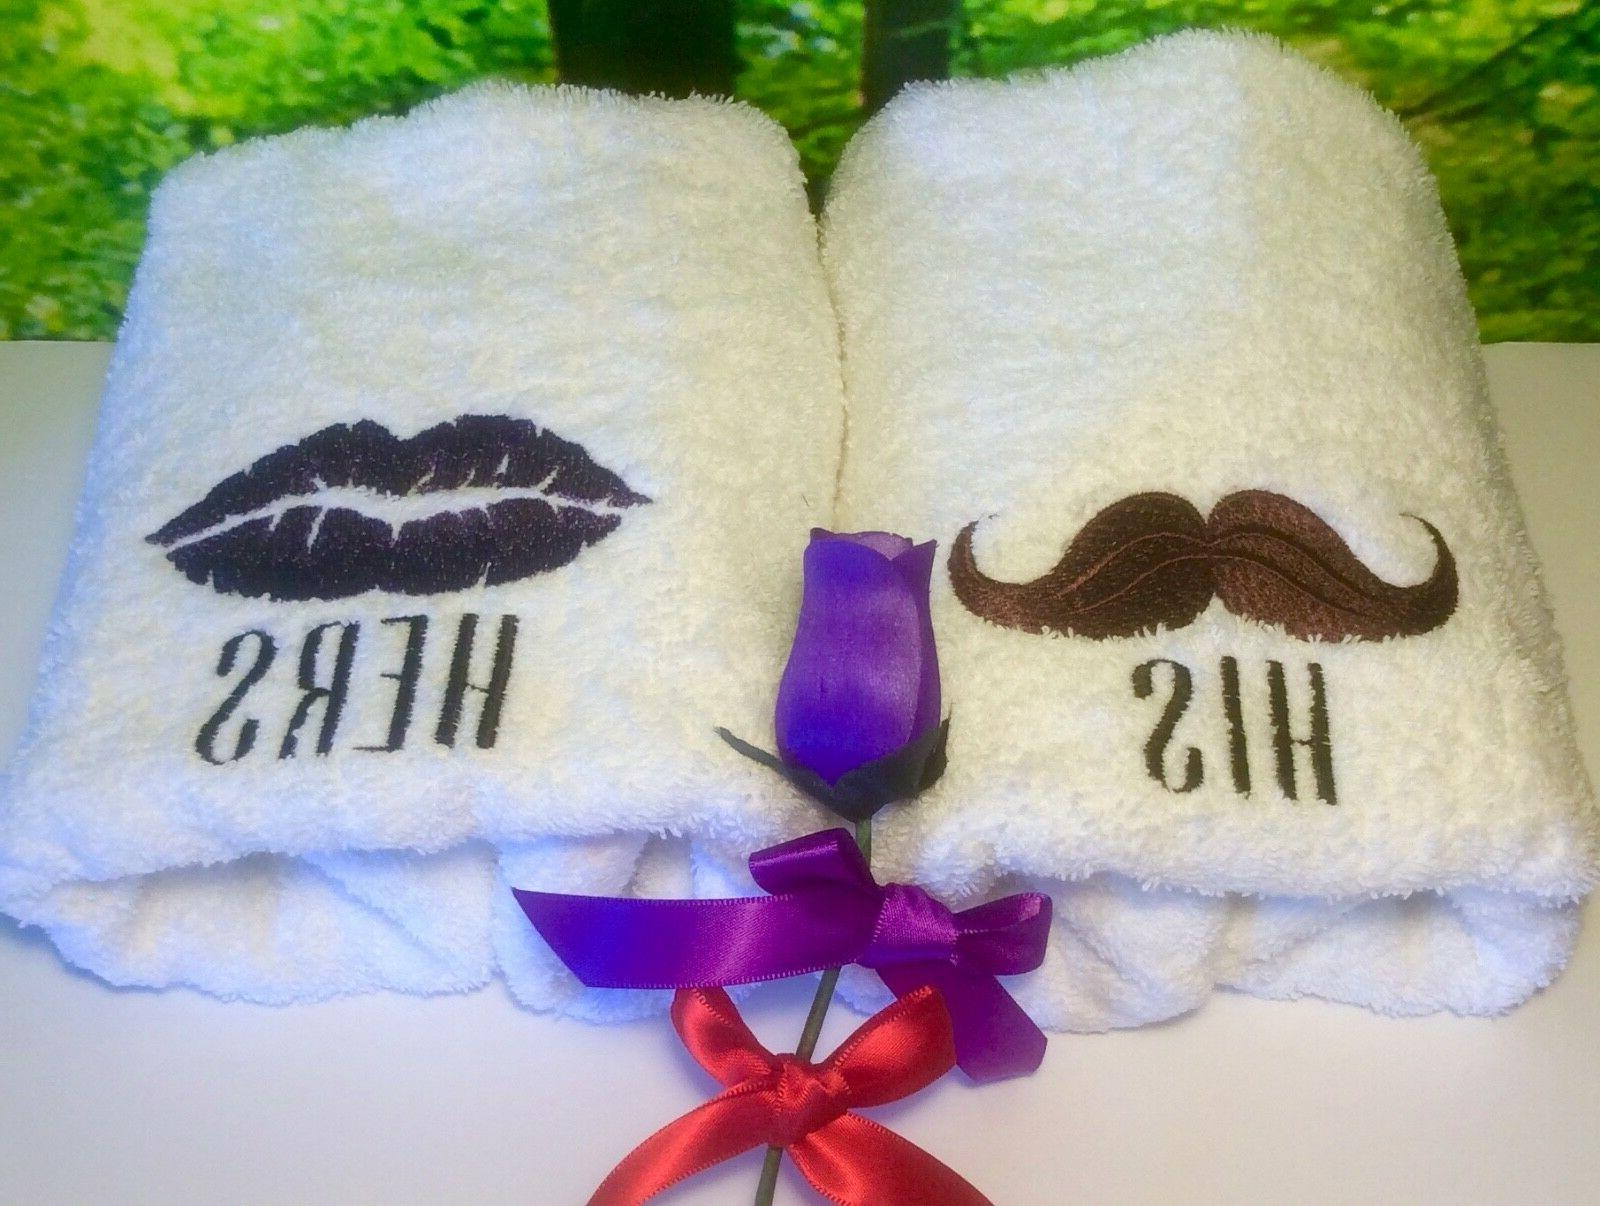 His Hers Towels, Anniversary/Wedding Towel Sets